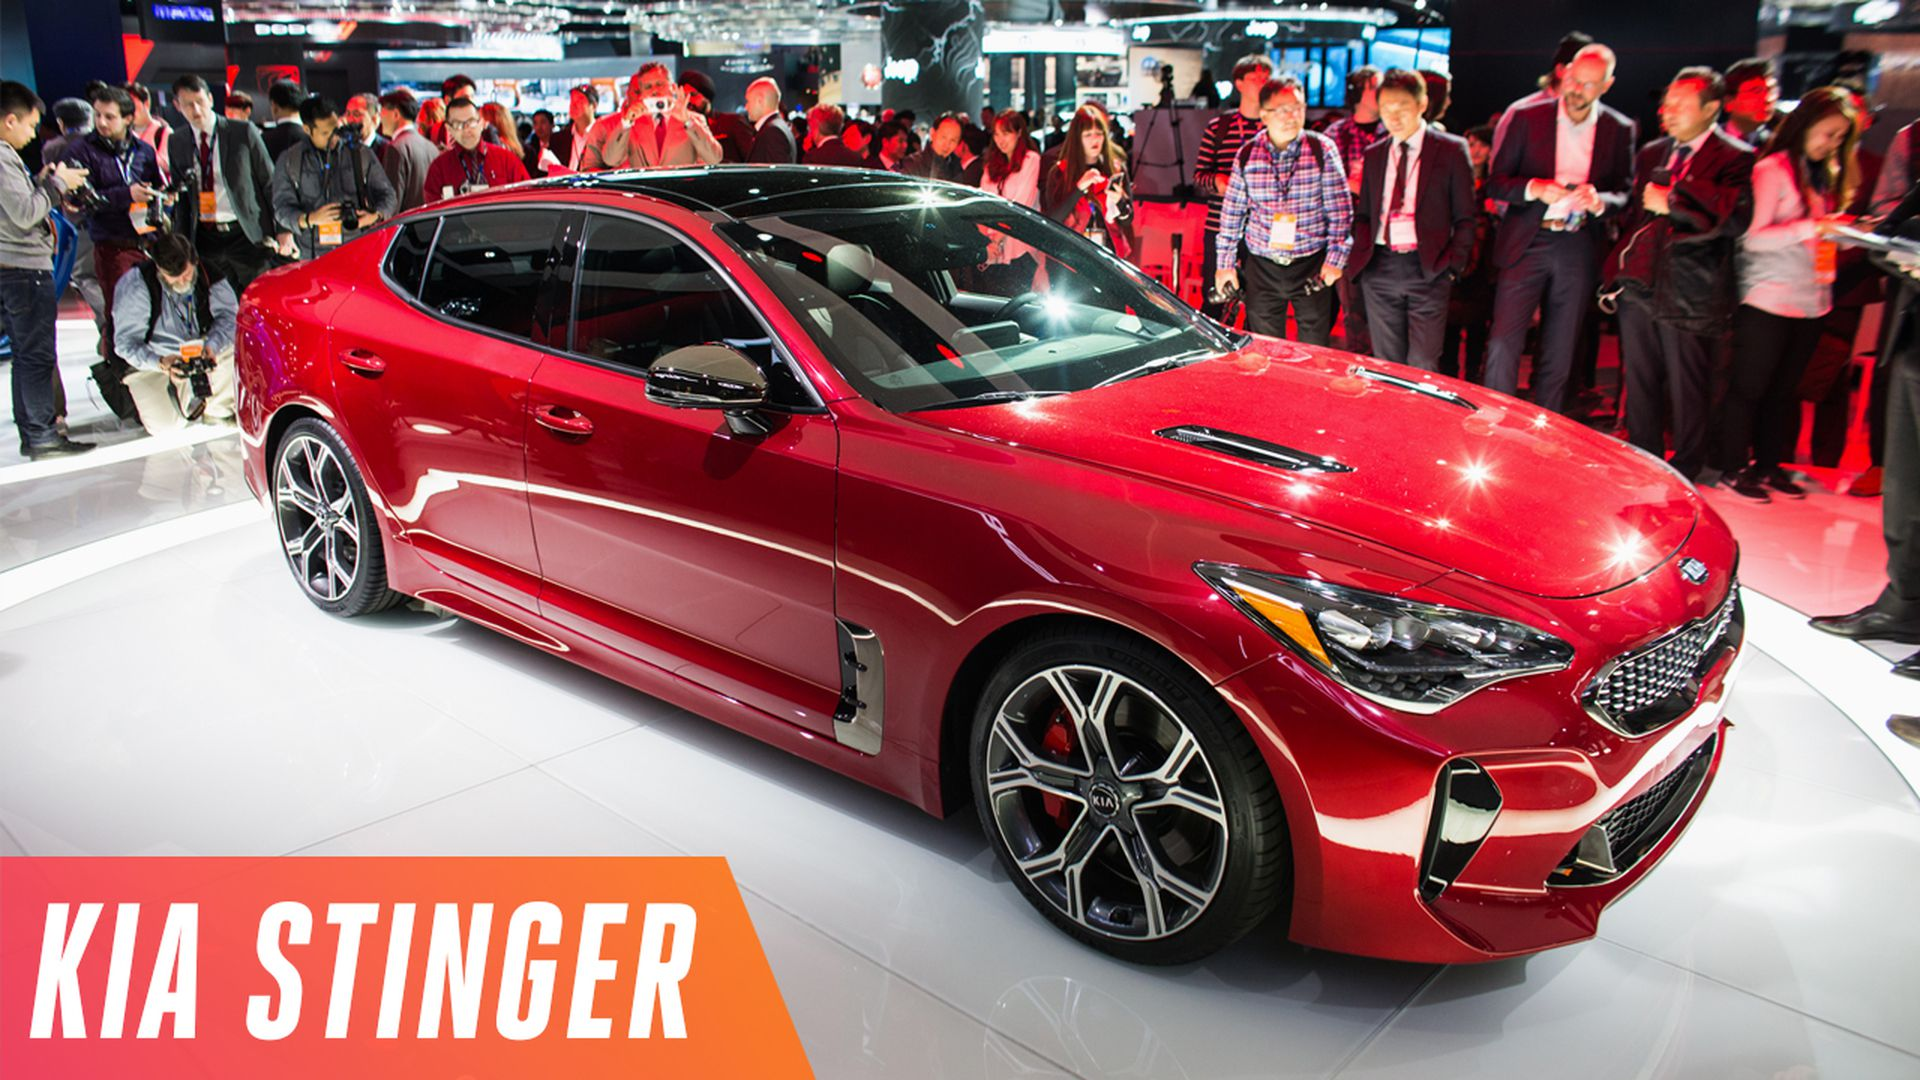 sedan one sports stinger was american rburgring sport all as new for fastback finalists n of named car kia on three year the north finalist